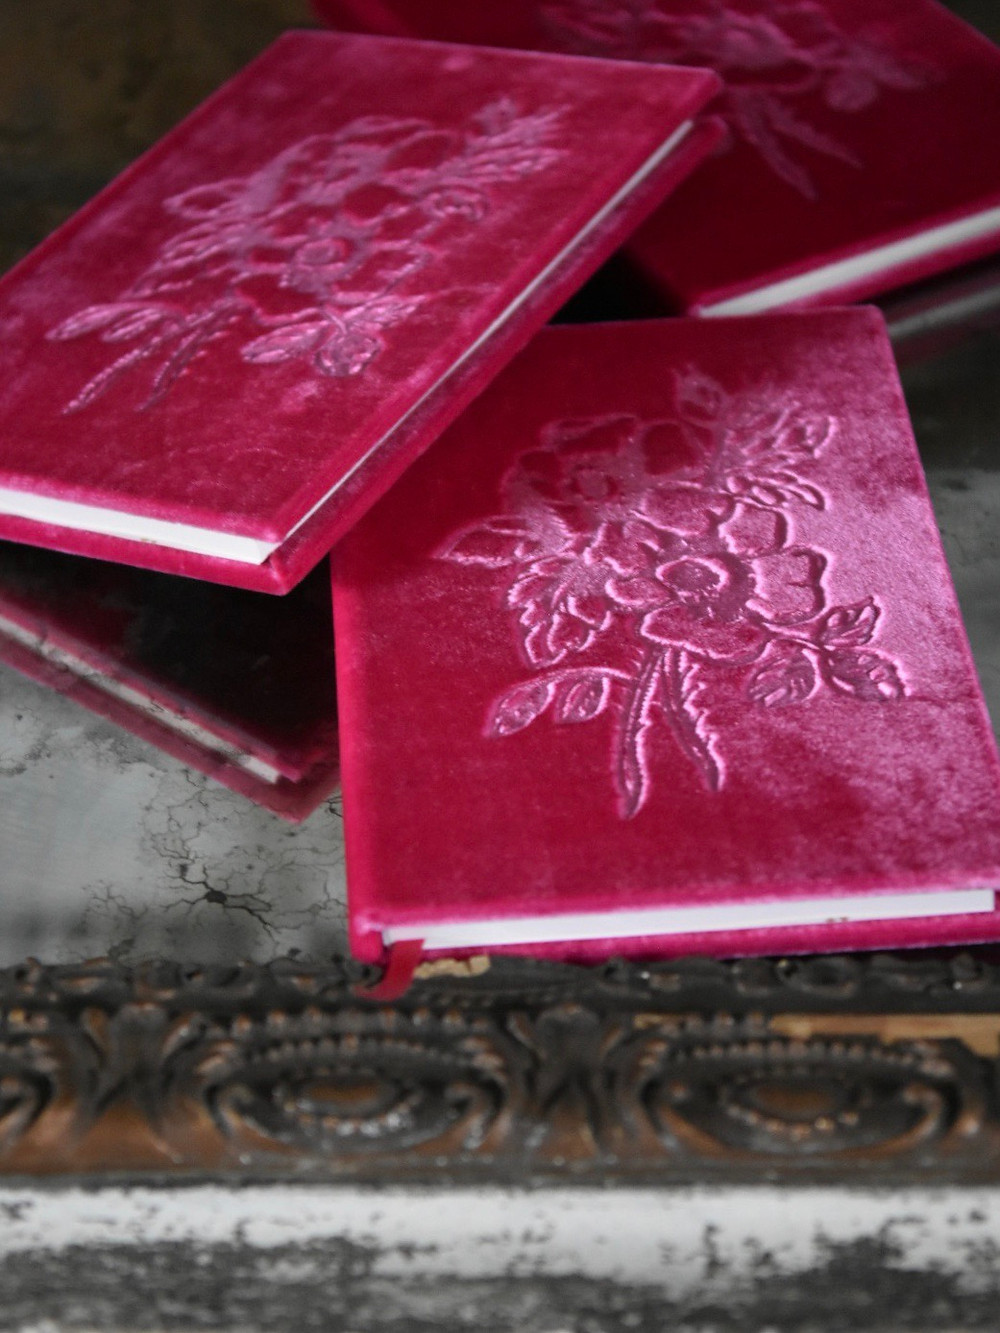 Silk velvet rose embossed books by artist Jennifer Lanne